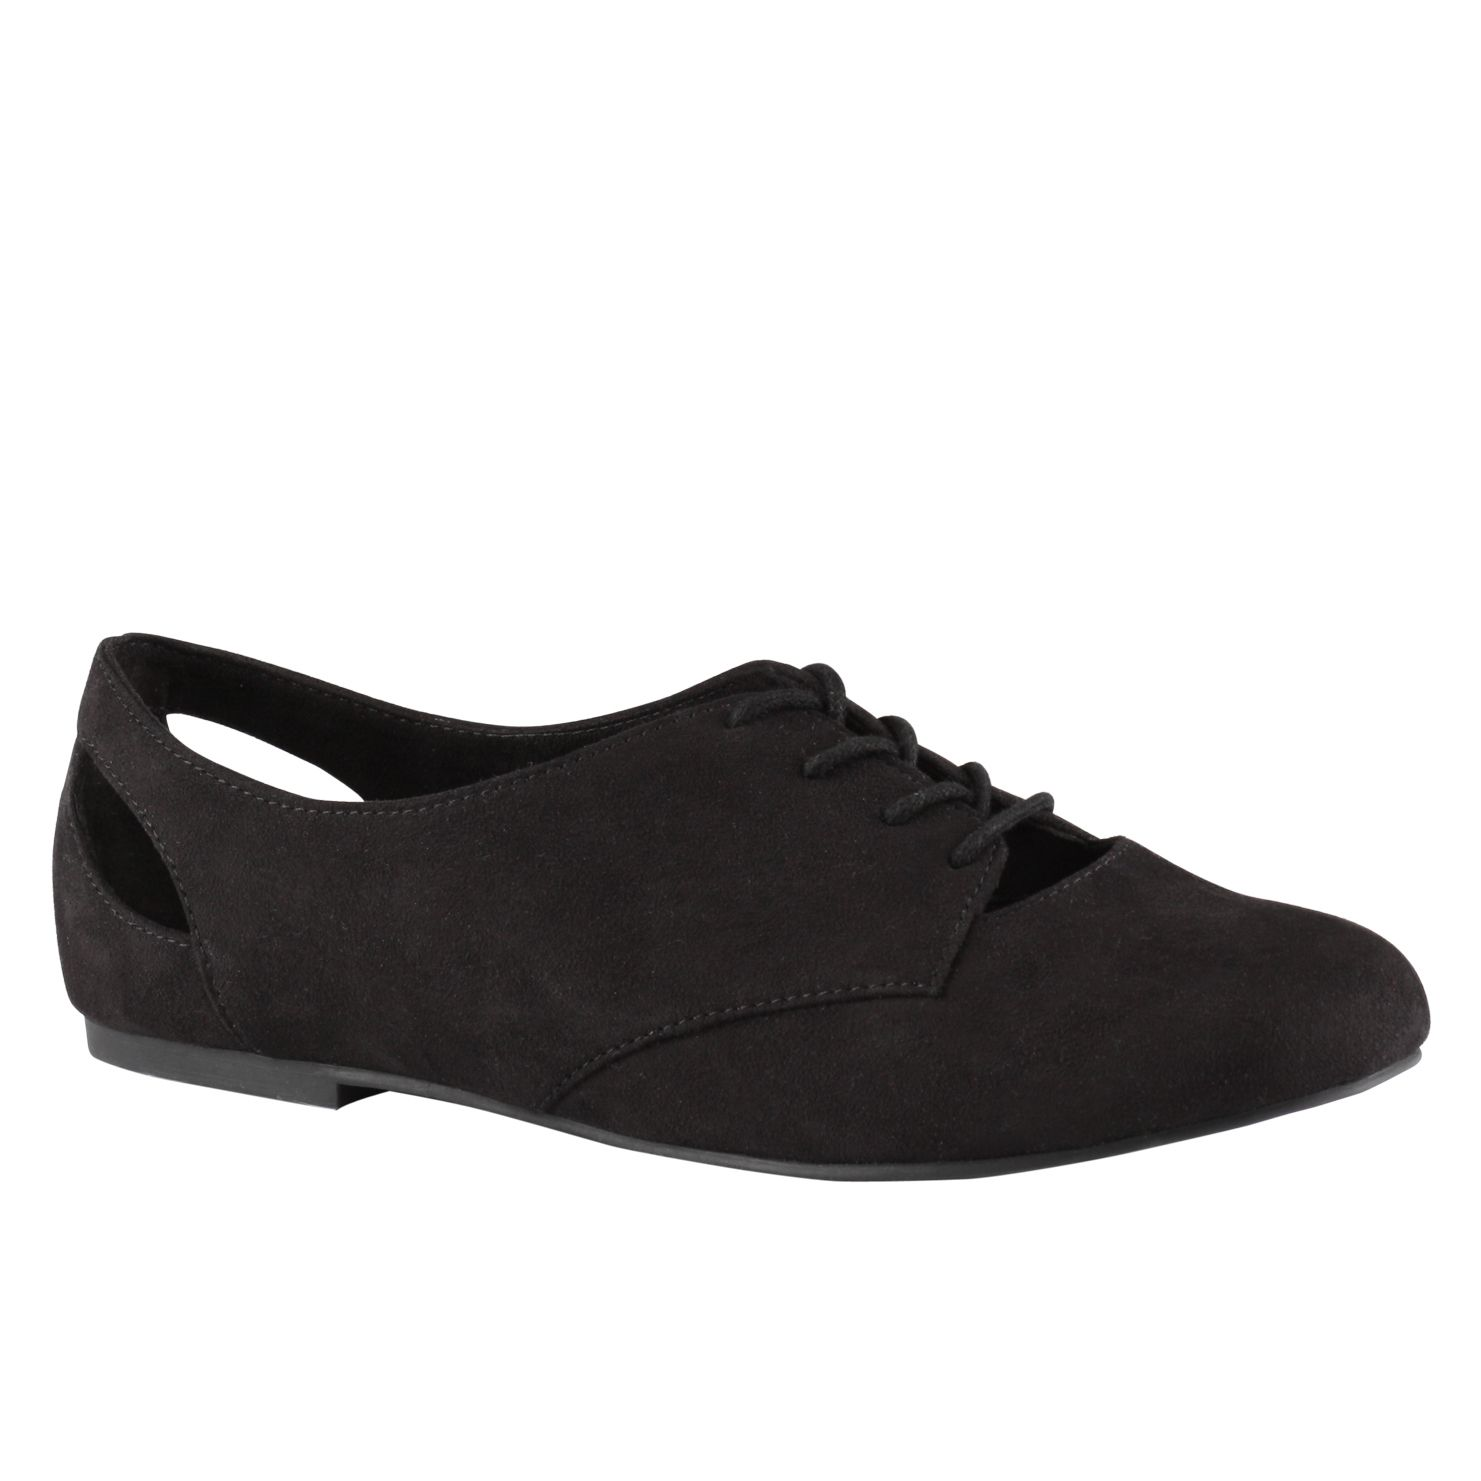 Galiallan almond toe lace up shoes